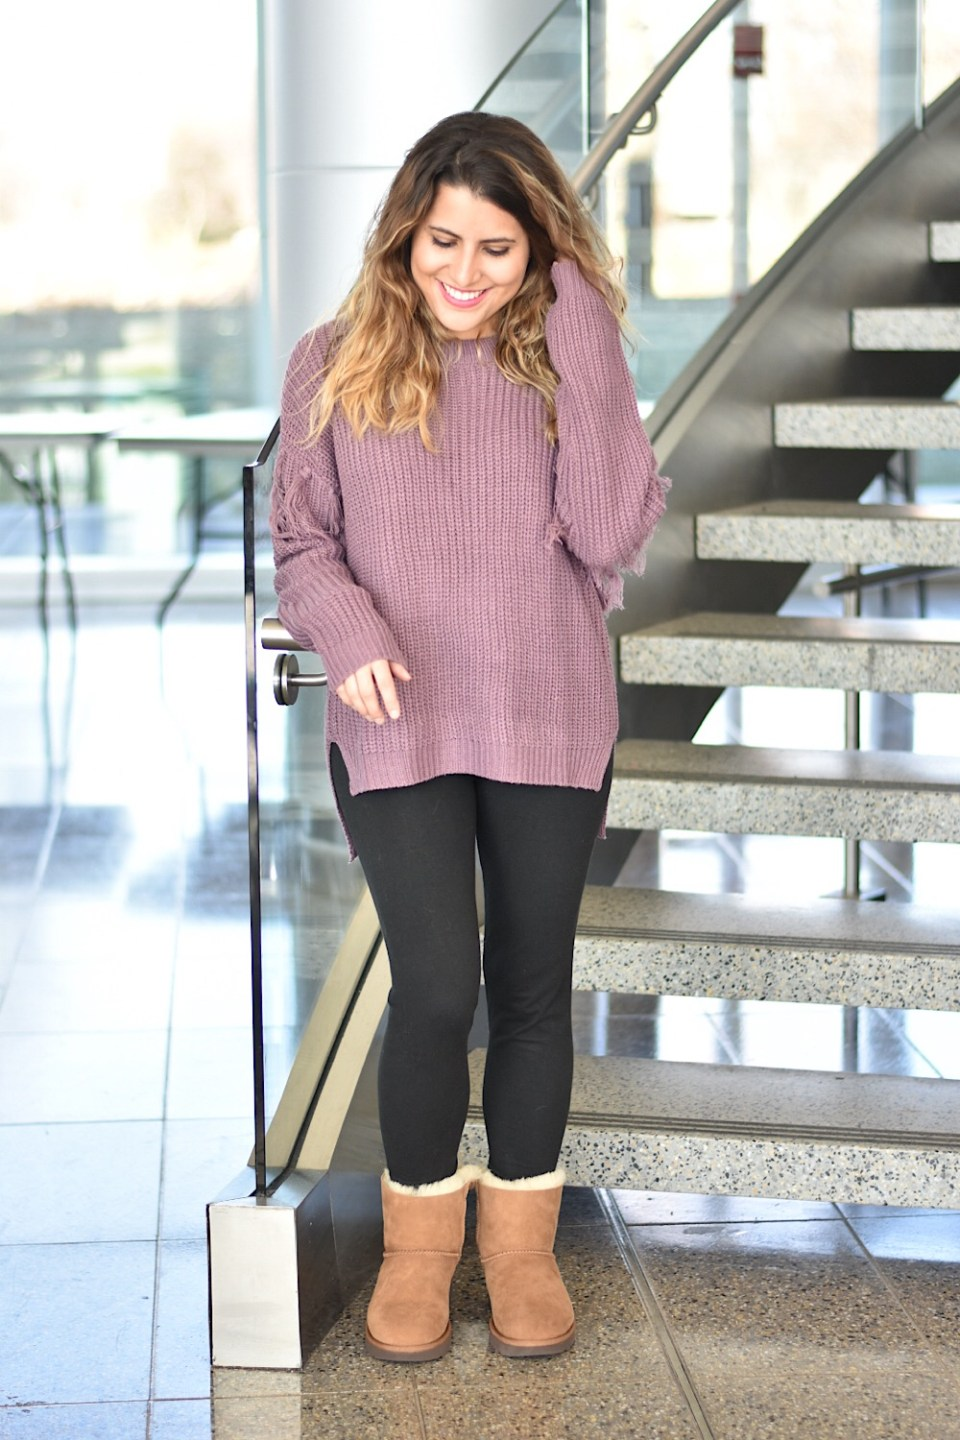 The Ultimate Comfy Outfit